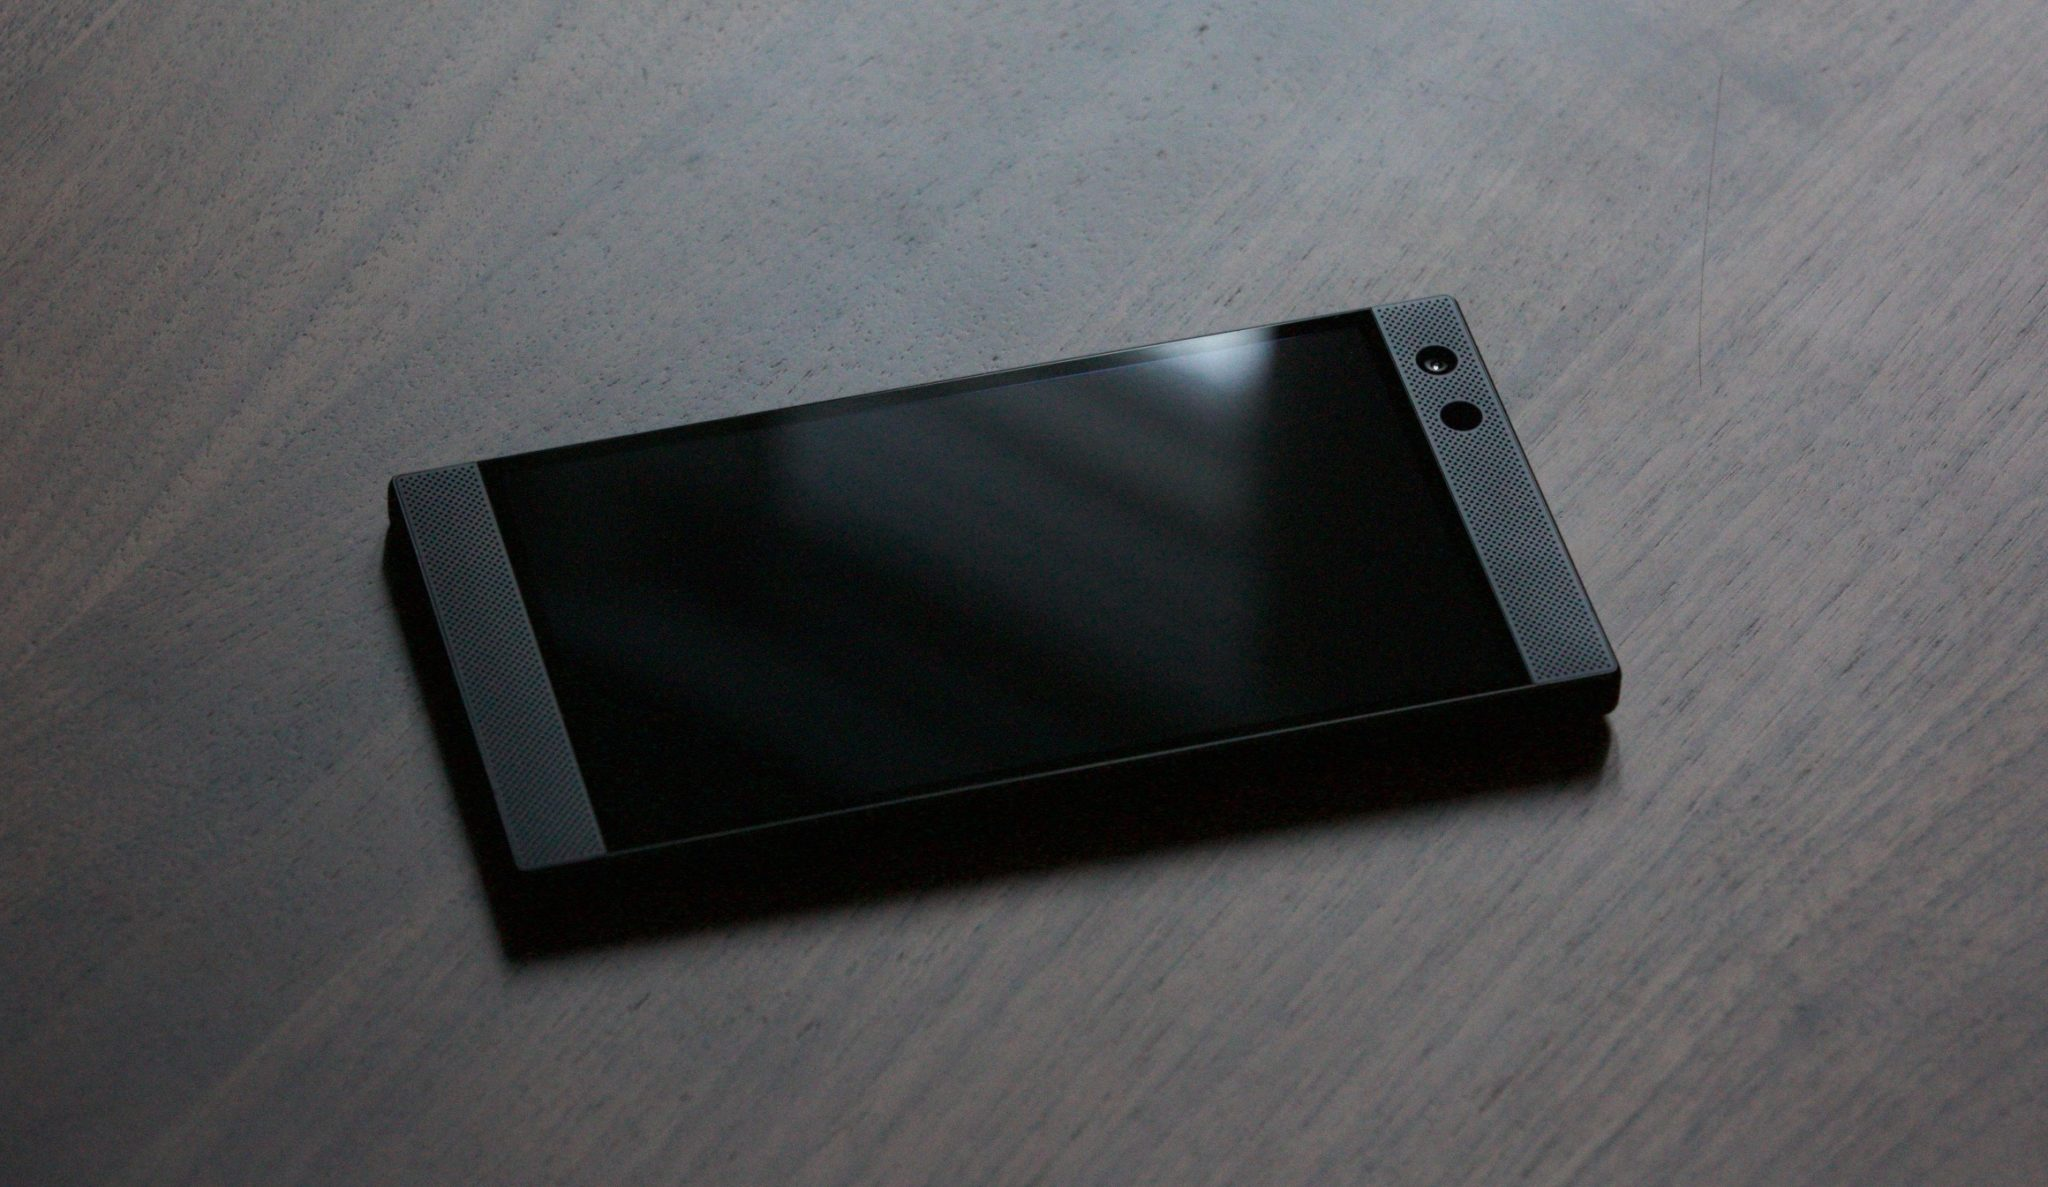 RAZER PHONE 2 Dolby-tuned front-facing stereo speakers